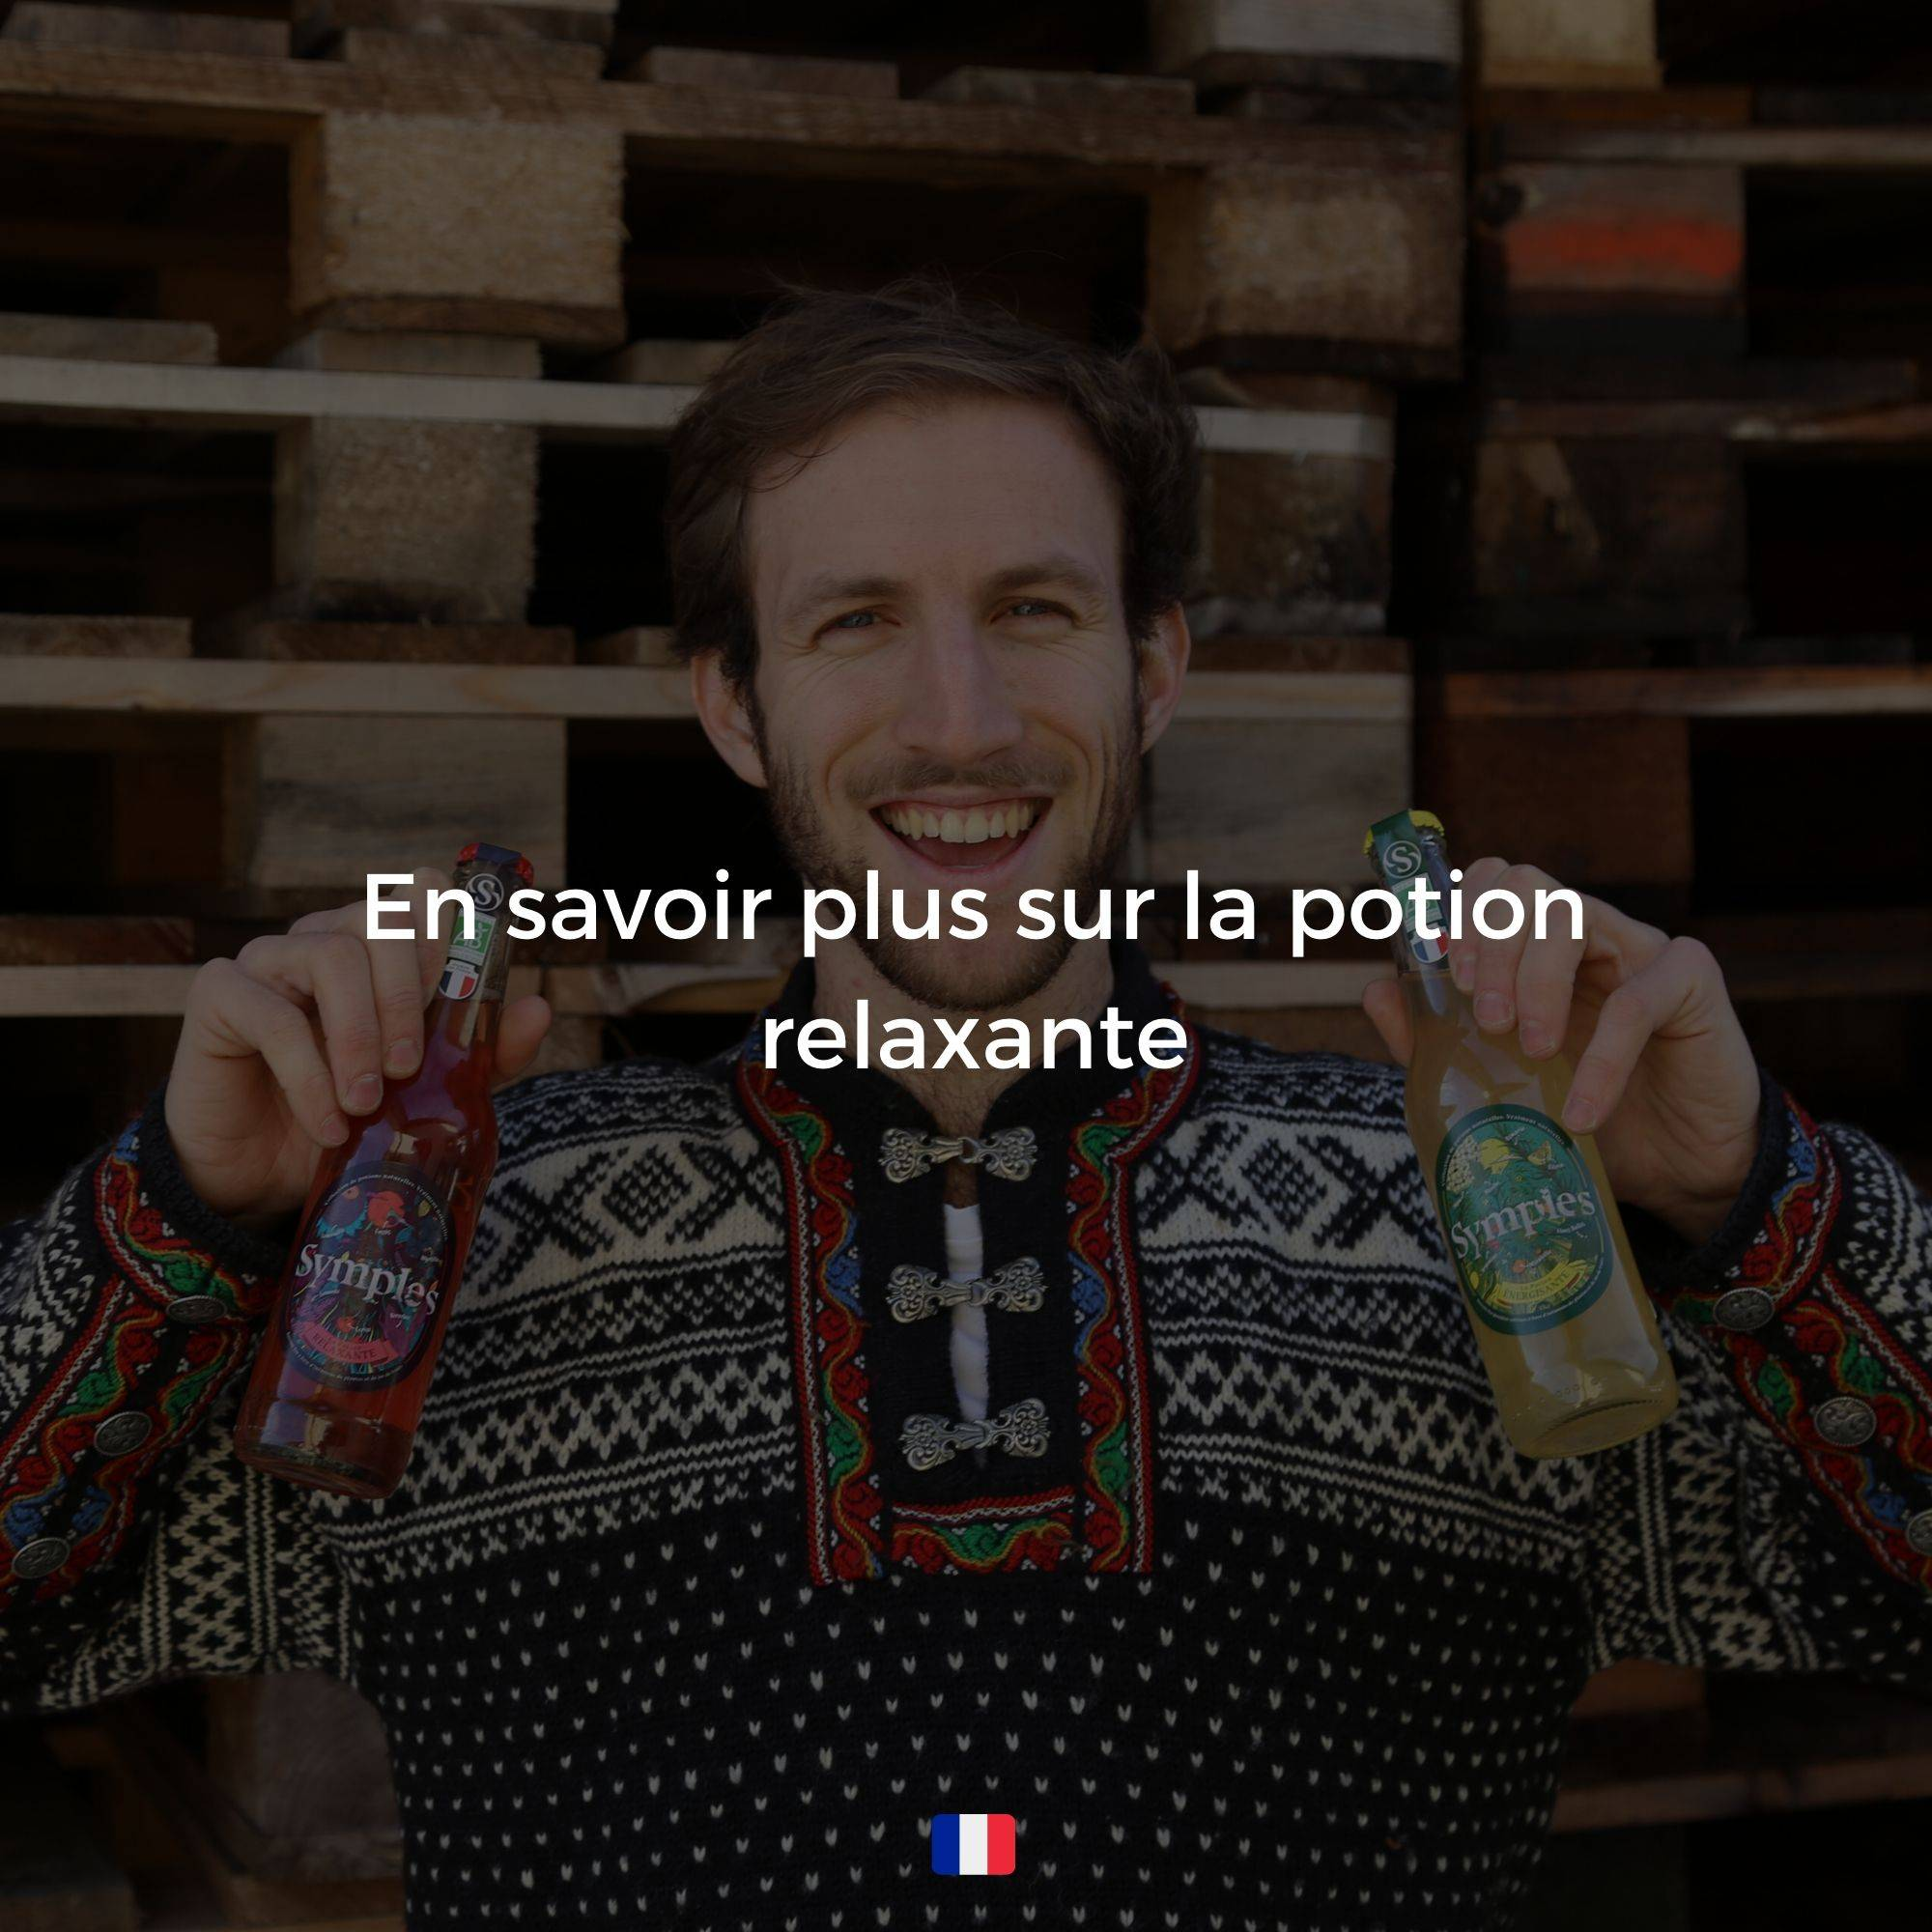 symples potion relaxante